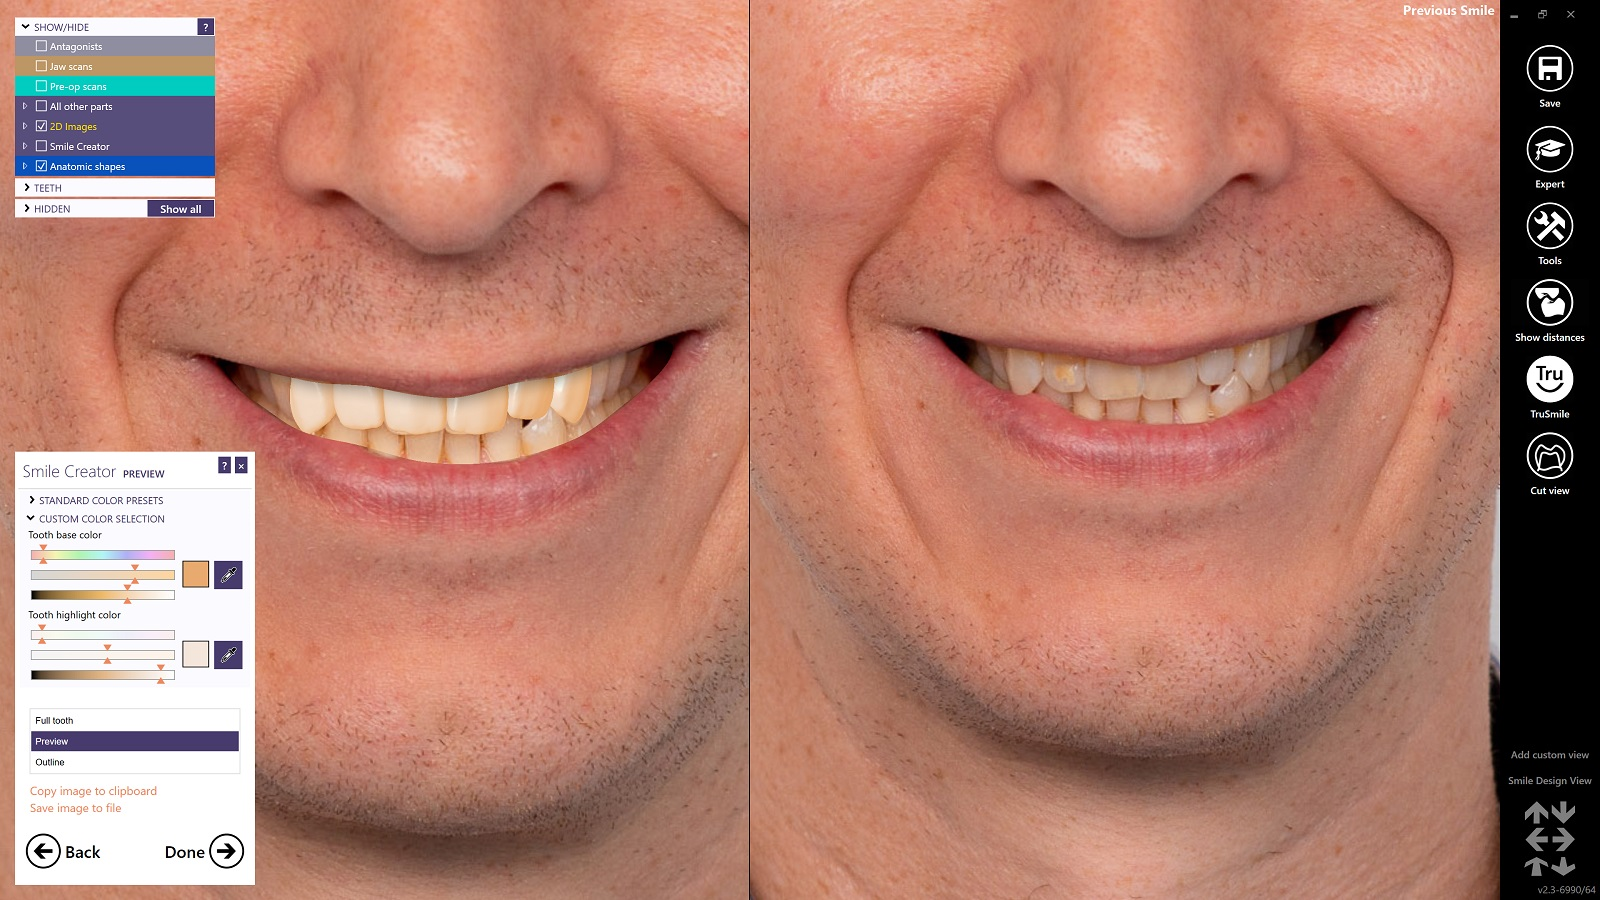 Alternatively, you can click on existing teeth in the photo, to match the color to the remaining dentition